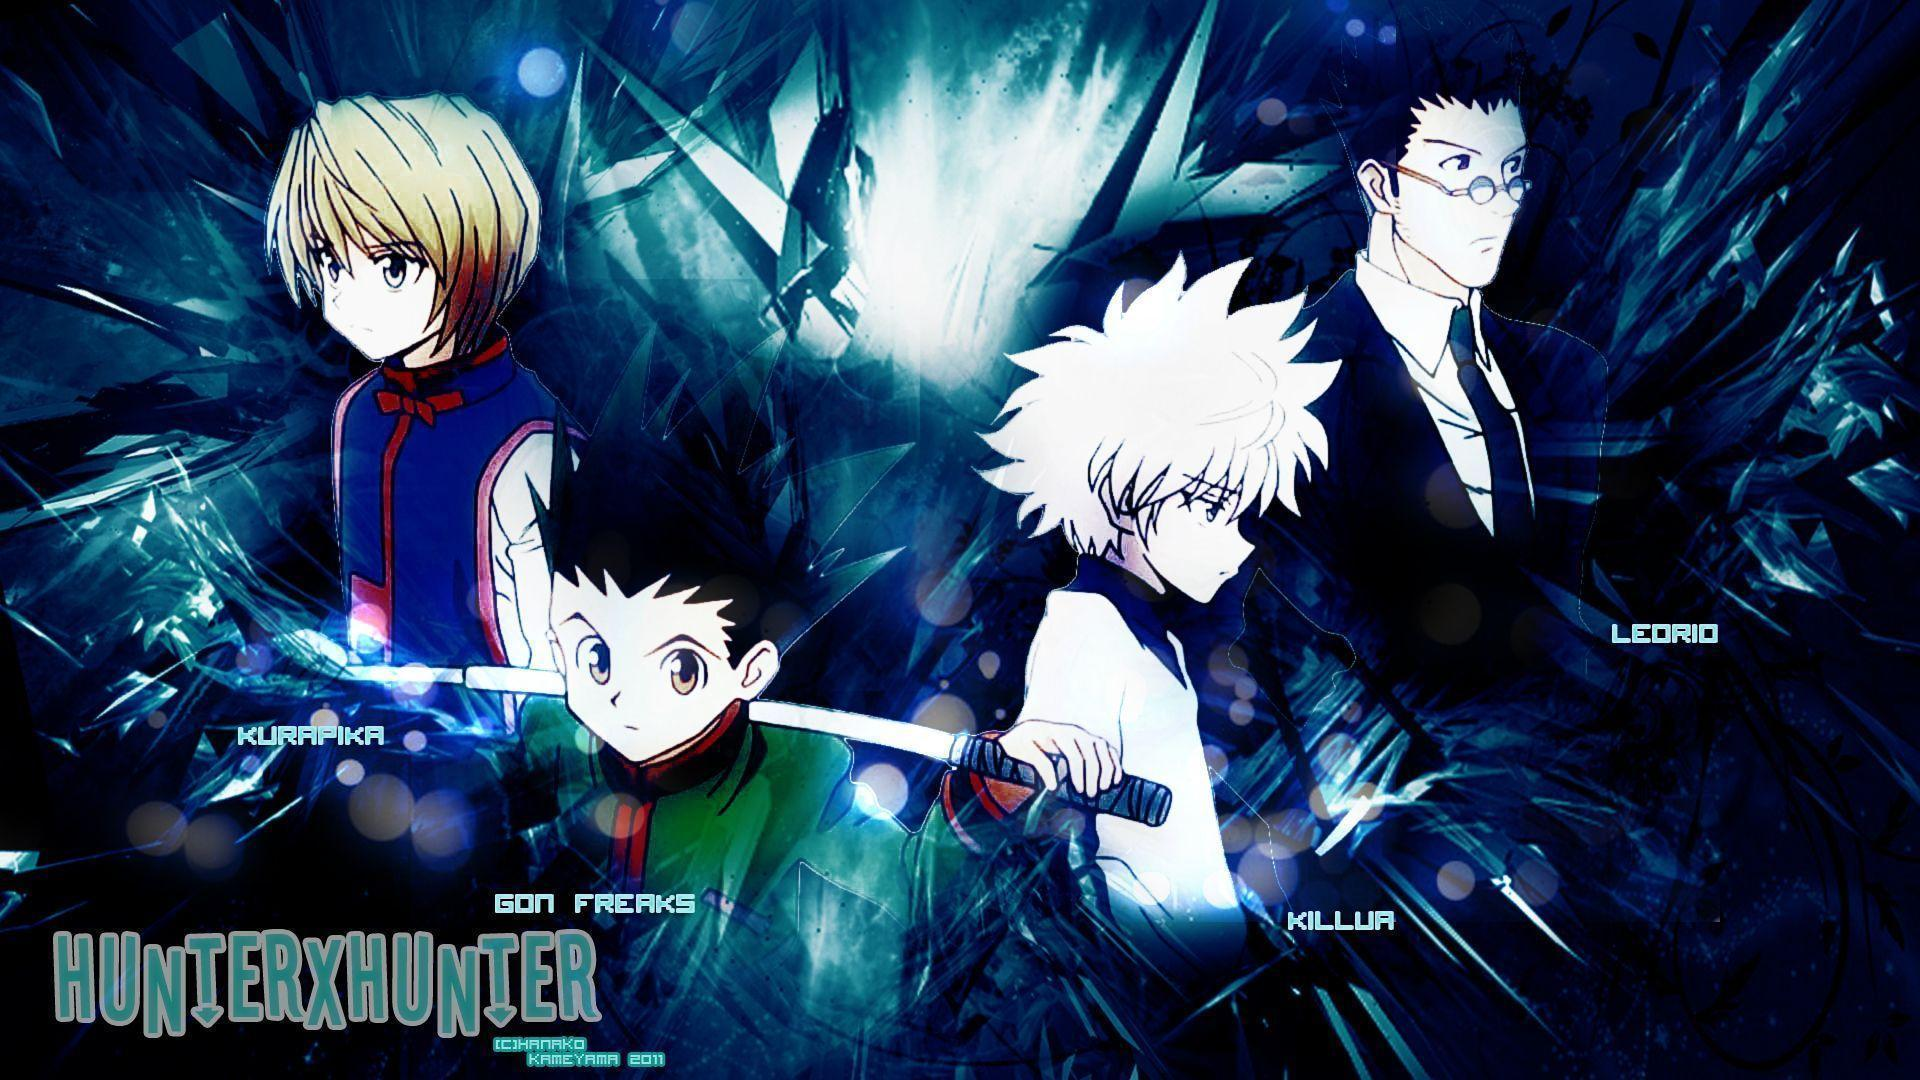 Collection of Hunter X Hunter Wallpapers on HDWallpapers